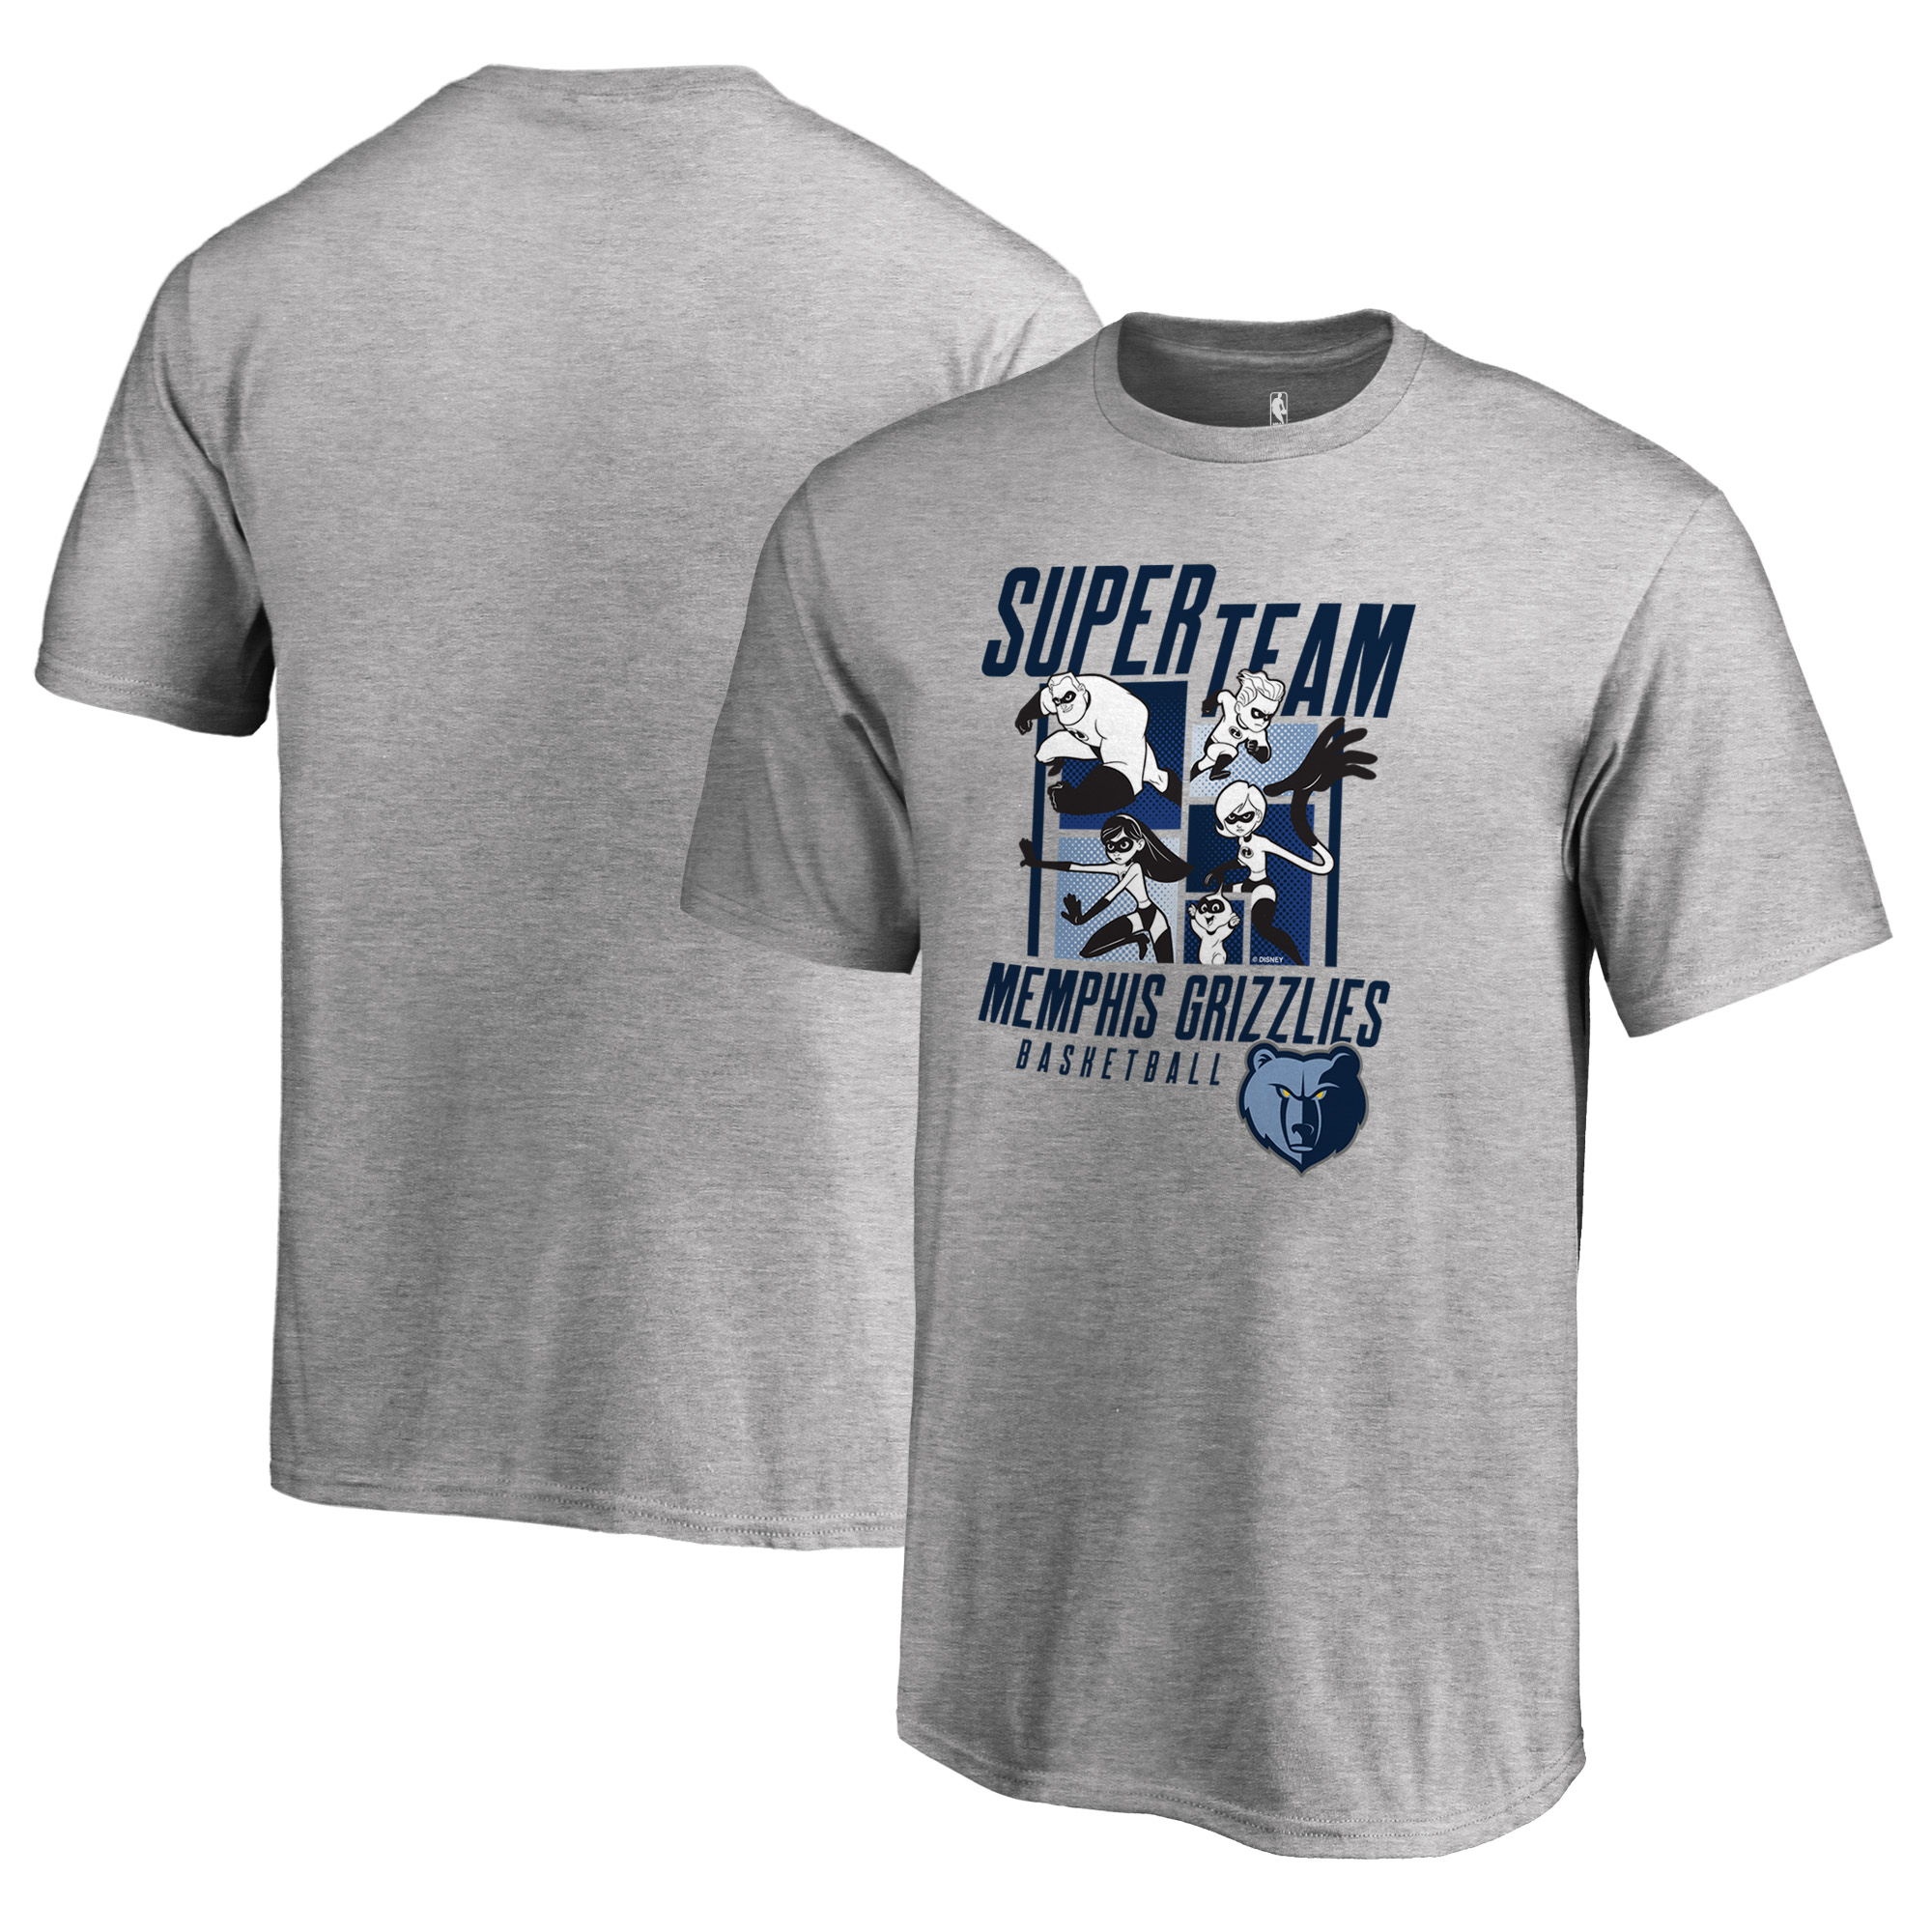 Memphis Grizzlies Fanatics Branded Youth Disney Pixar The Incredibles Super Team T-Shirt - Heathered Gray